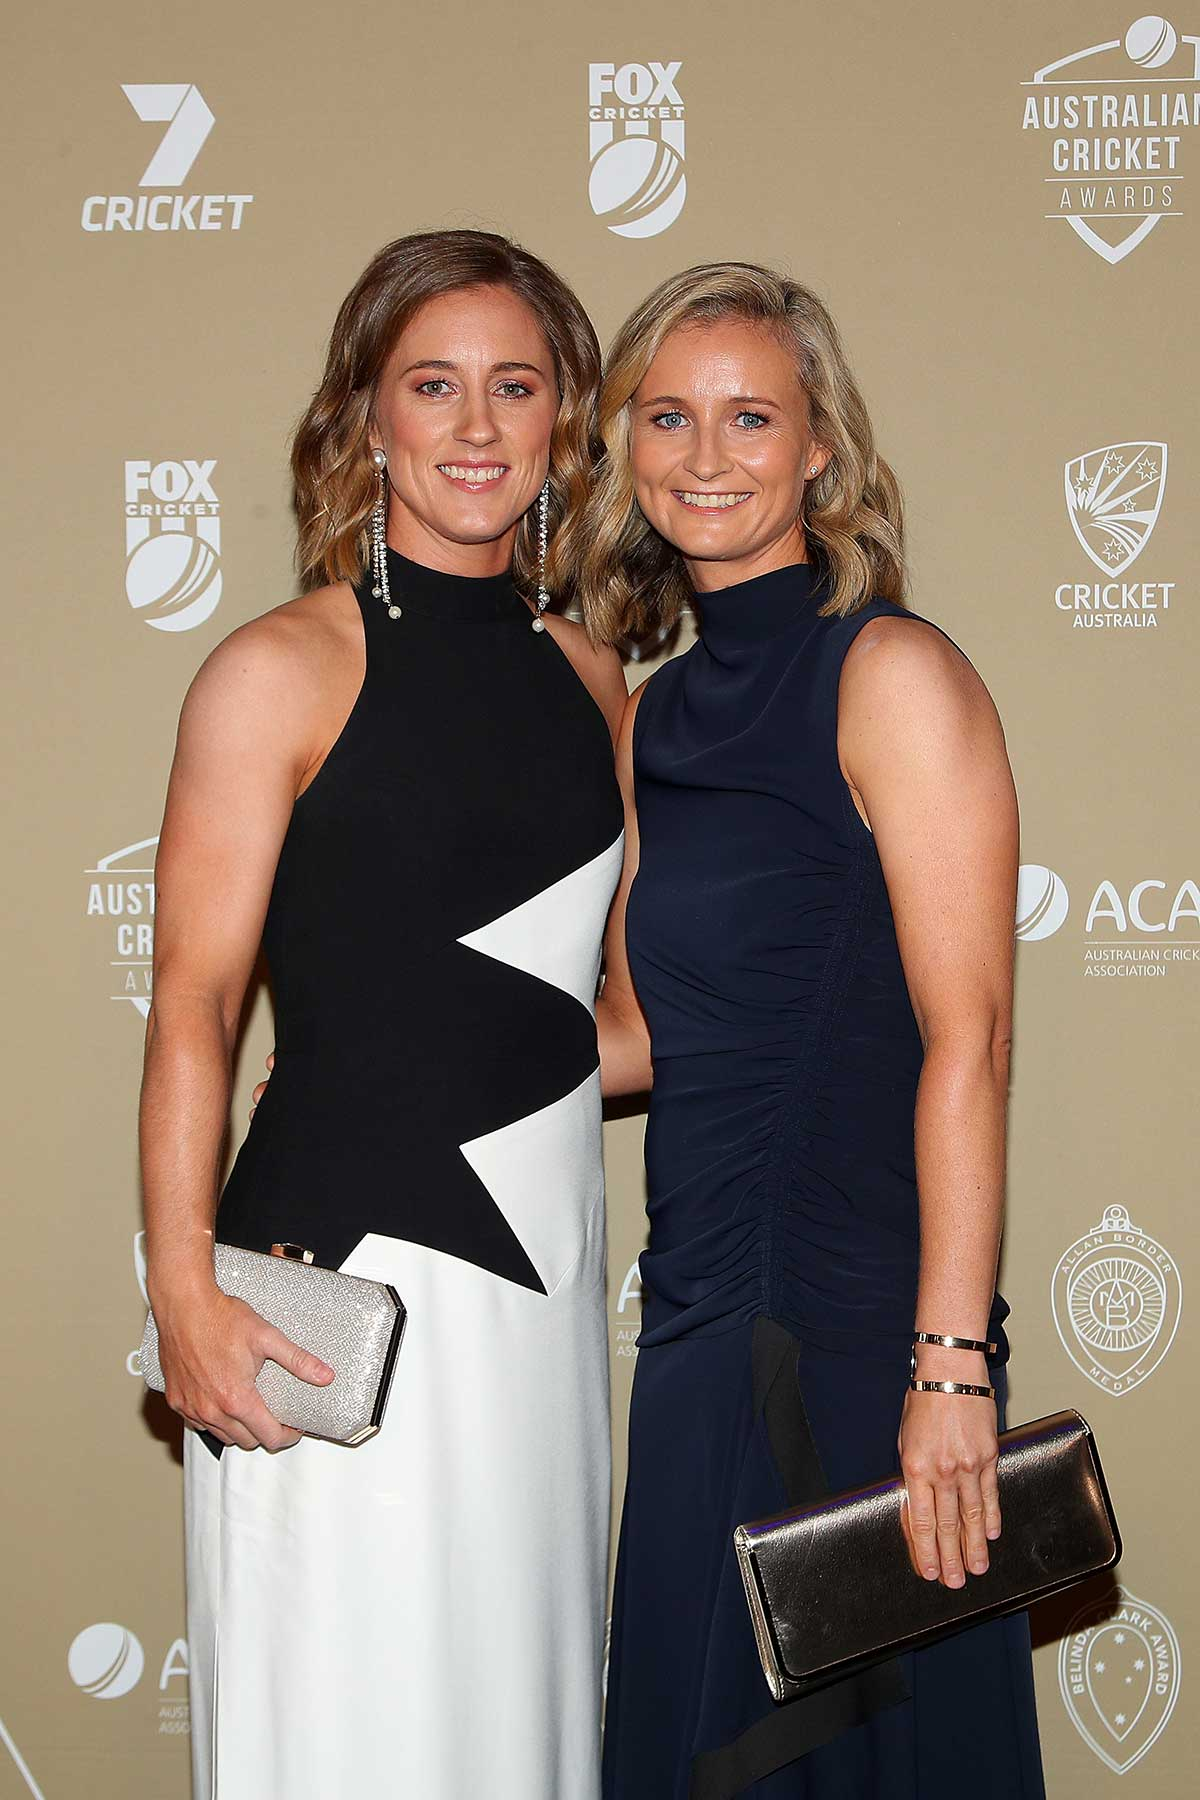 Rachel Haynes and Leah Poulton // Getty